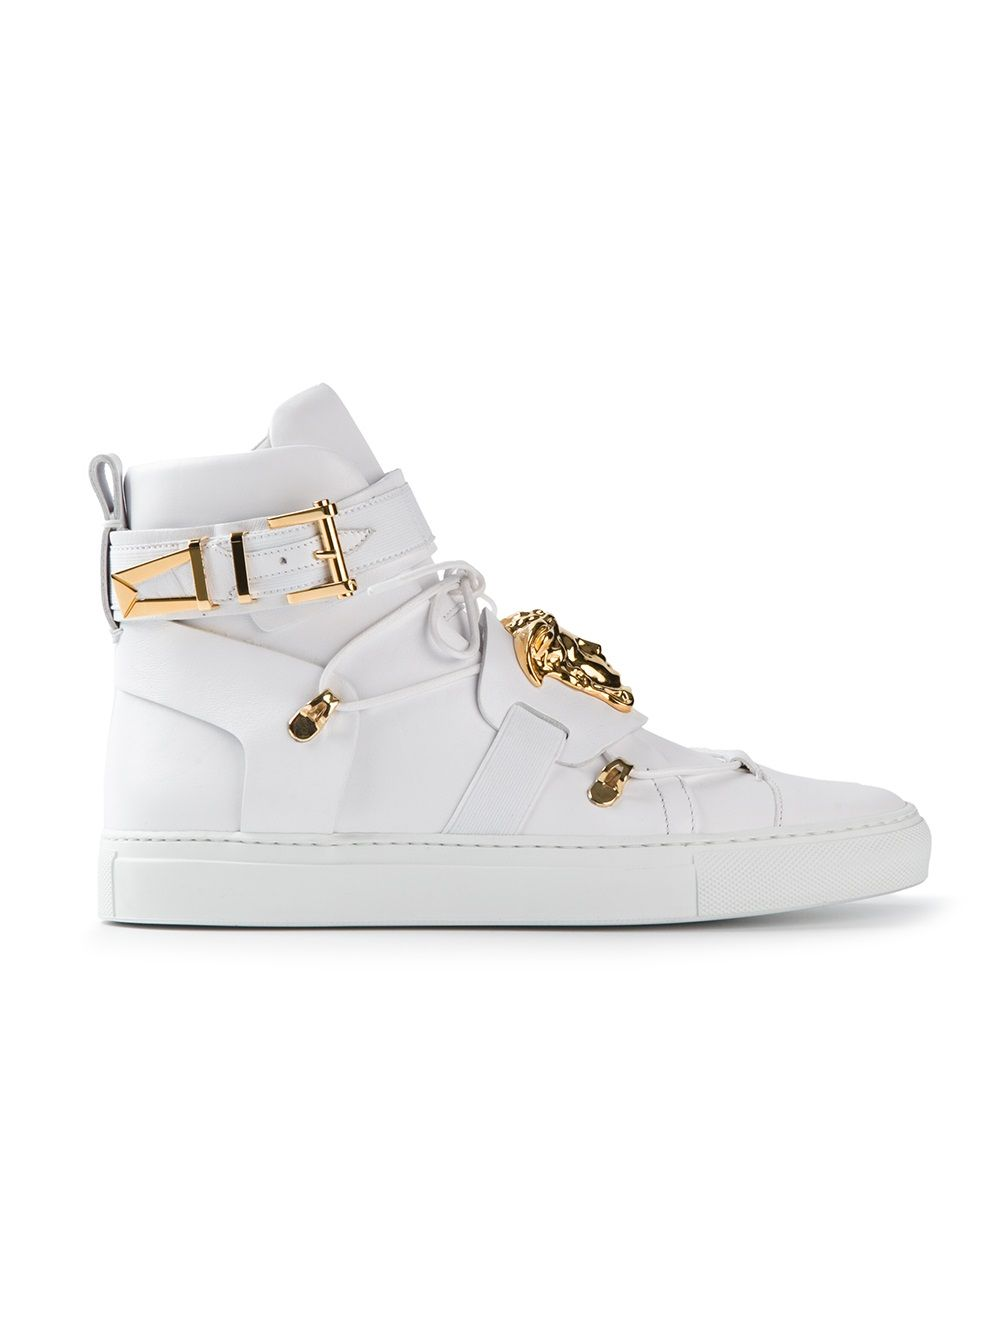 ec20b0ce0 Versace Medusa Hi-top Sneakers - Elite - Farfetch.com | Fashion at ...